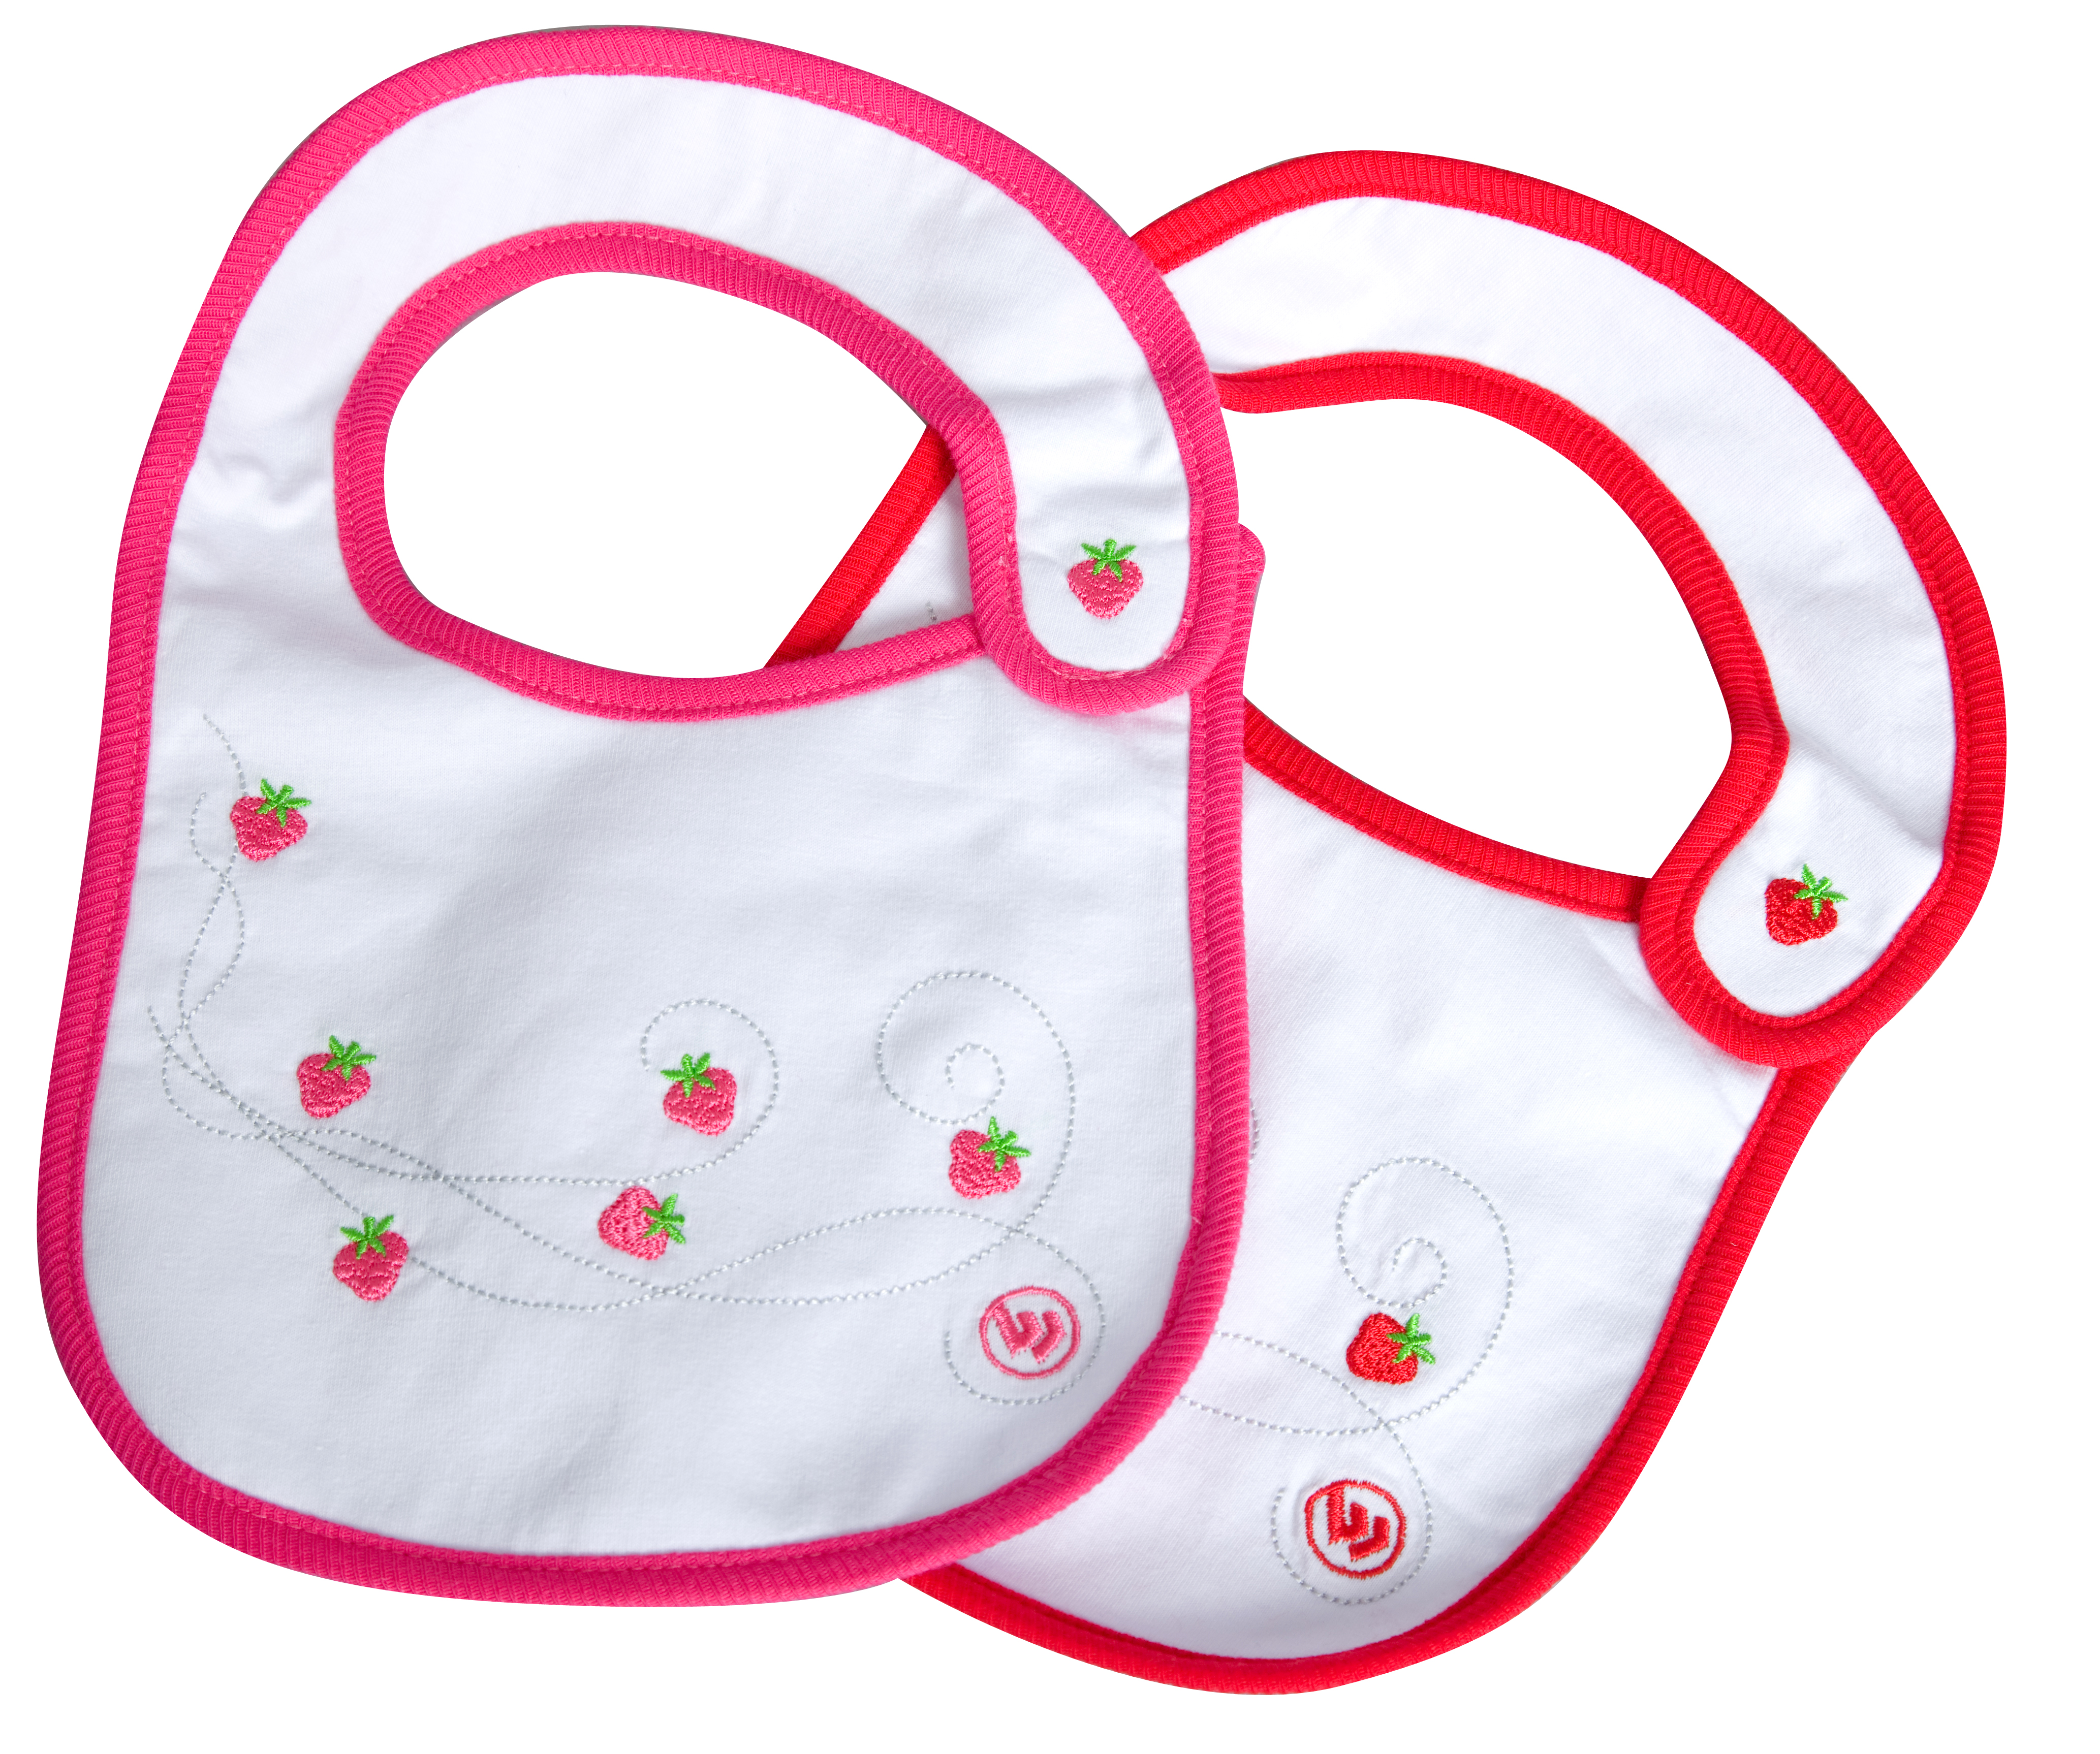 Wimbledon Strawberry Bib 2 Pack - White/Pink White/Red - Girls